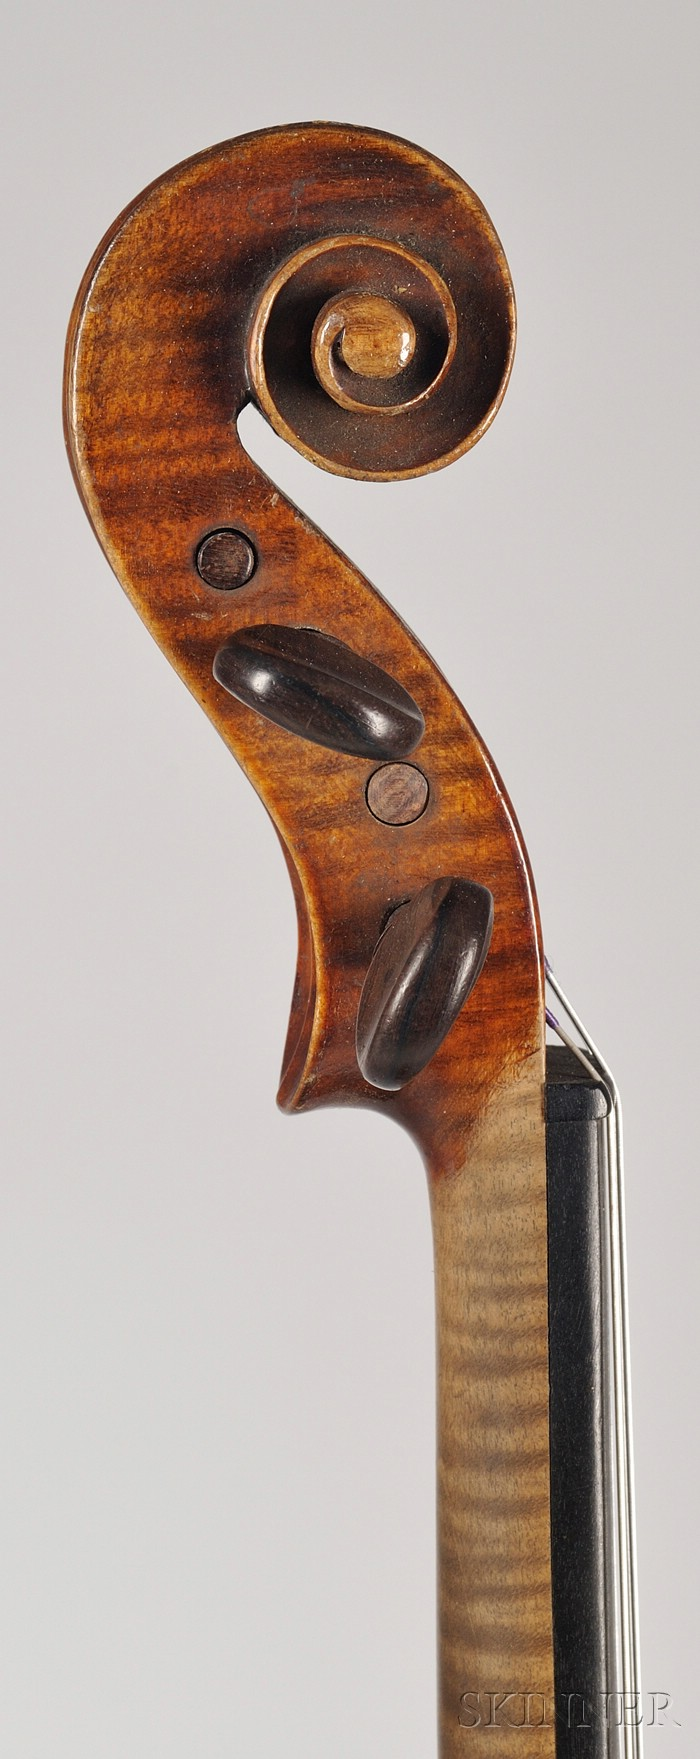 German Violin, Wolff Brothers, Kreuznach, c. 1895